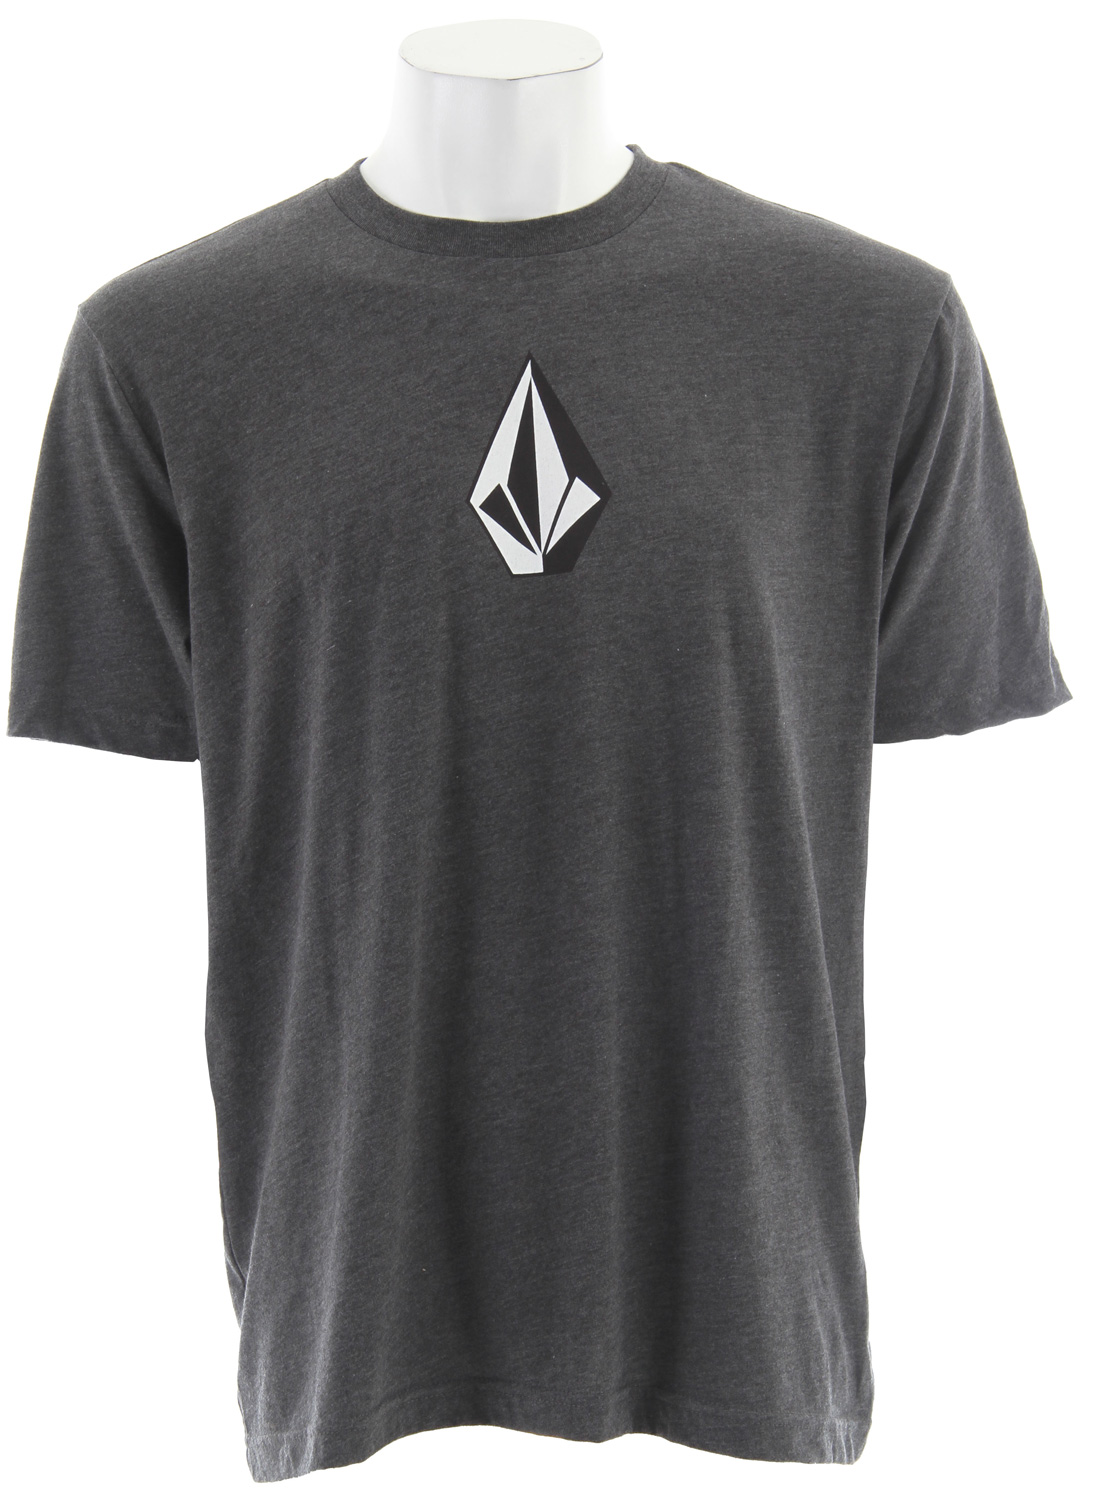 Surf Key Features of The Volcom The Stone Three Heather T-Shirt:  Regular Fit  Crew Neck  Short Sleeve  Basic screenprint  50/50 Cotton/Poly jersey - $18.95